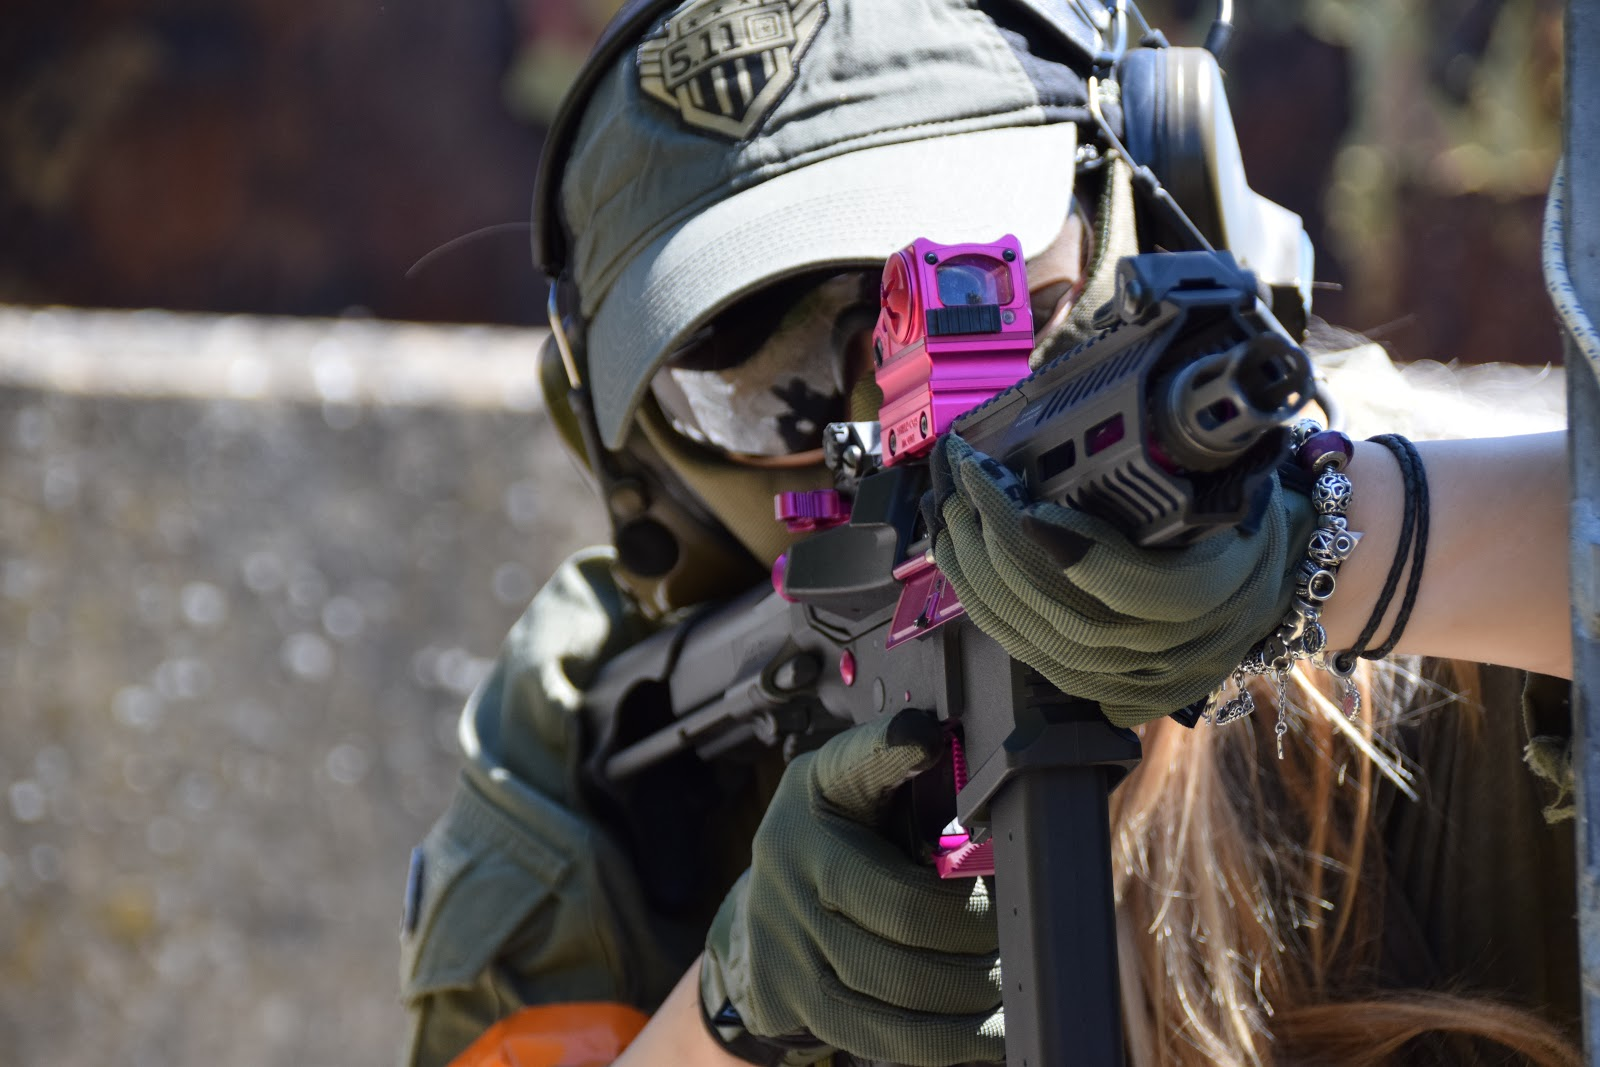 IN THE ARMOURY: G&G ARP 9 BLACK ORCHID REVIEW! - Femme